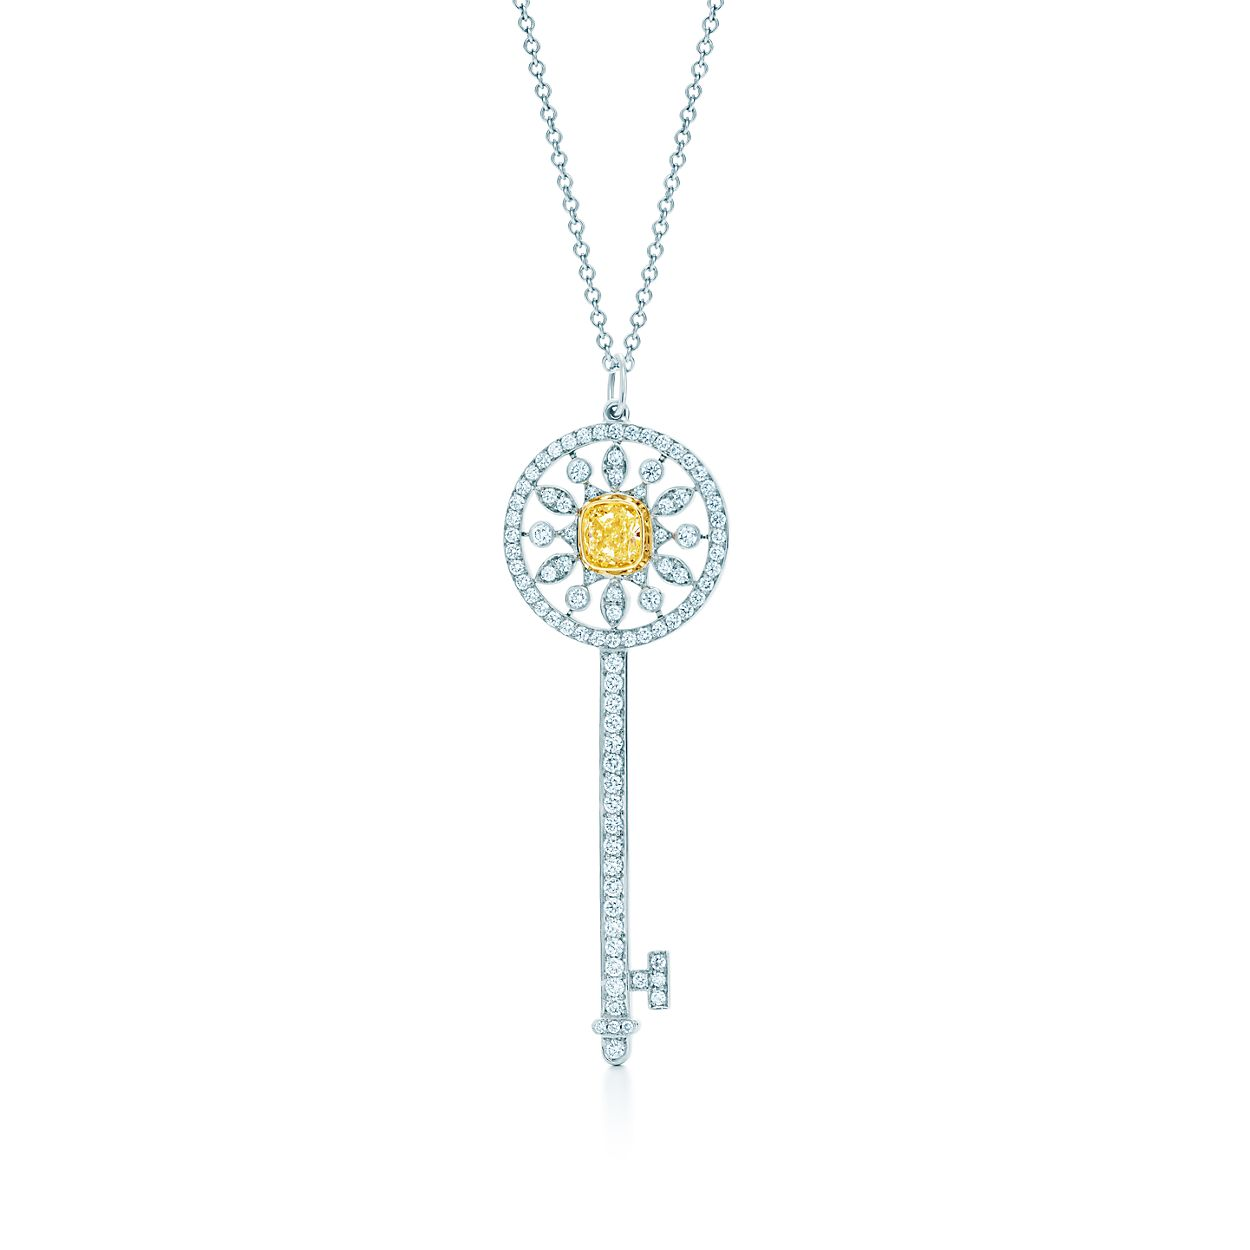 Tiffany keys star key pendant of yellow and white diamonds in tiffany keysstar key pendant tiffany keysstar key pendant aloadofball Gallery